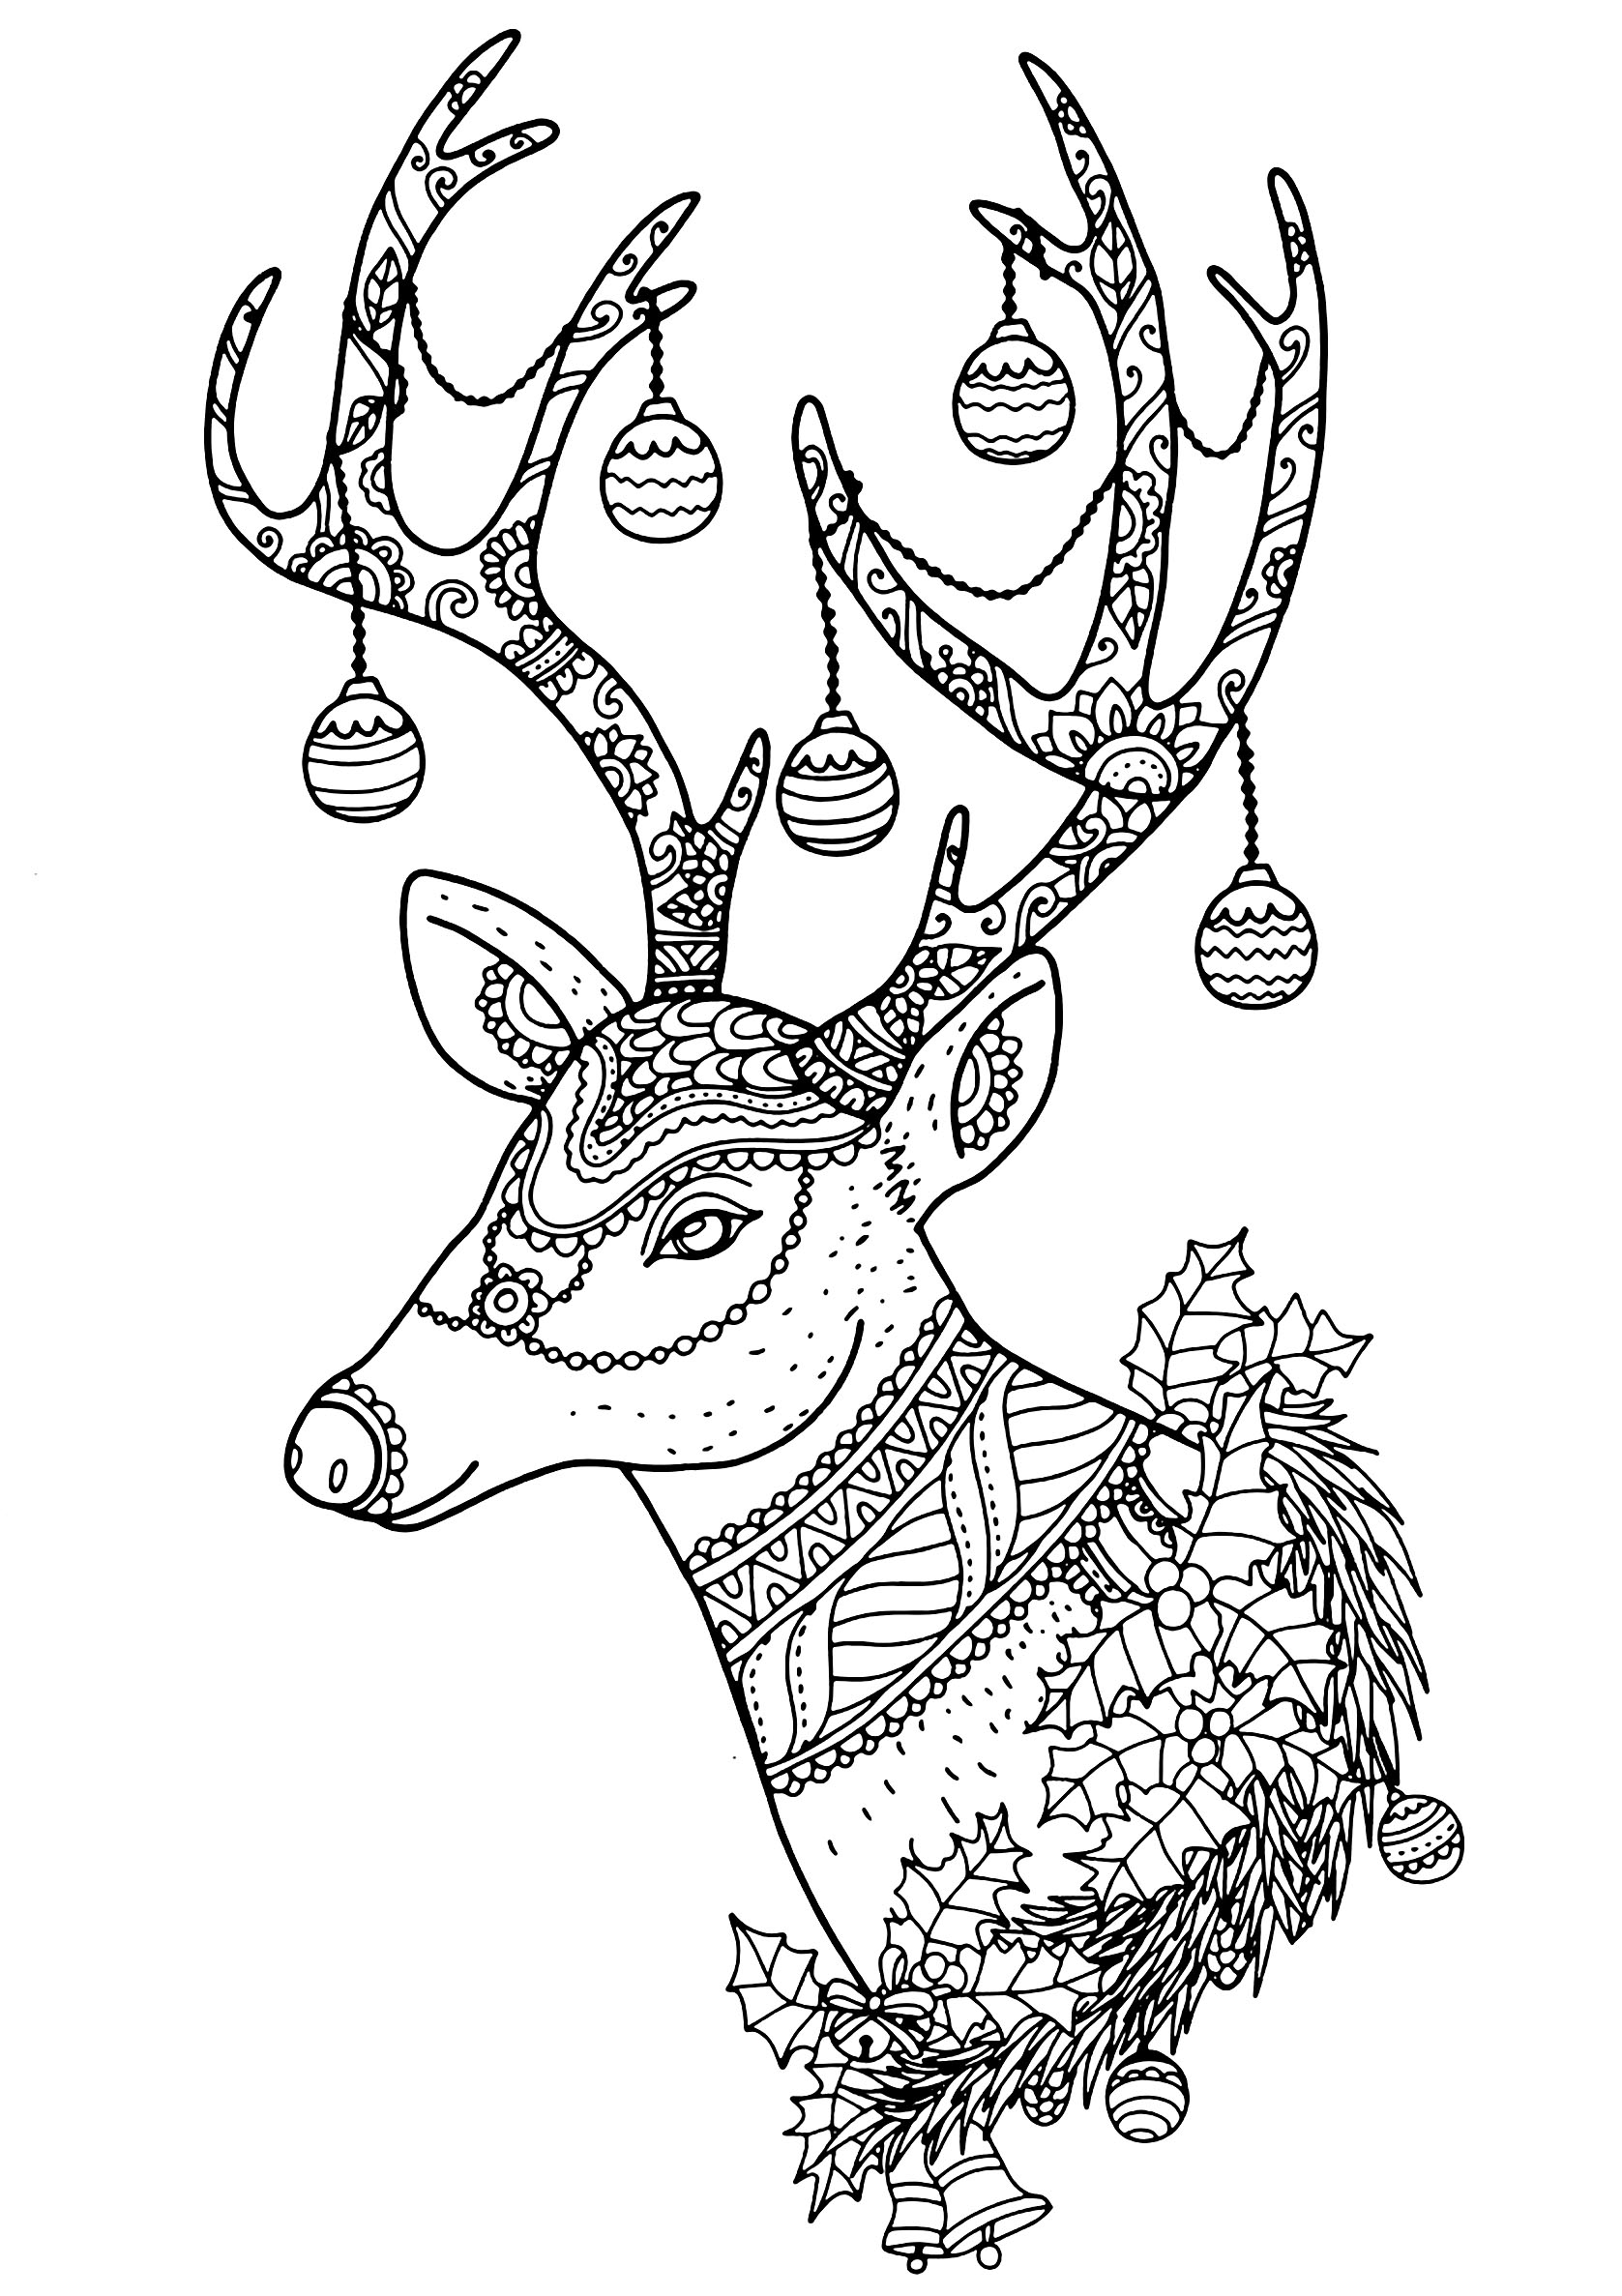 Christmas Reindeer Coloring Pages With New Gallery Printable Sheet